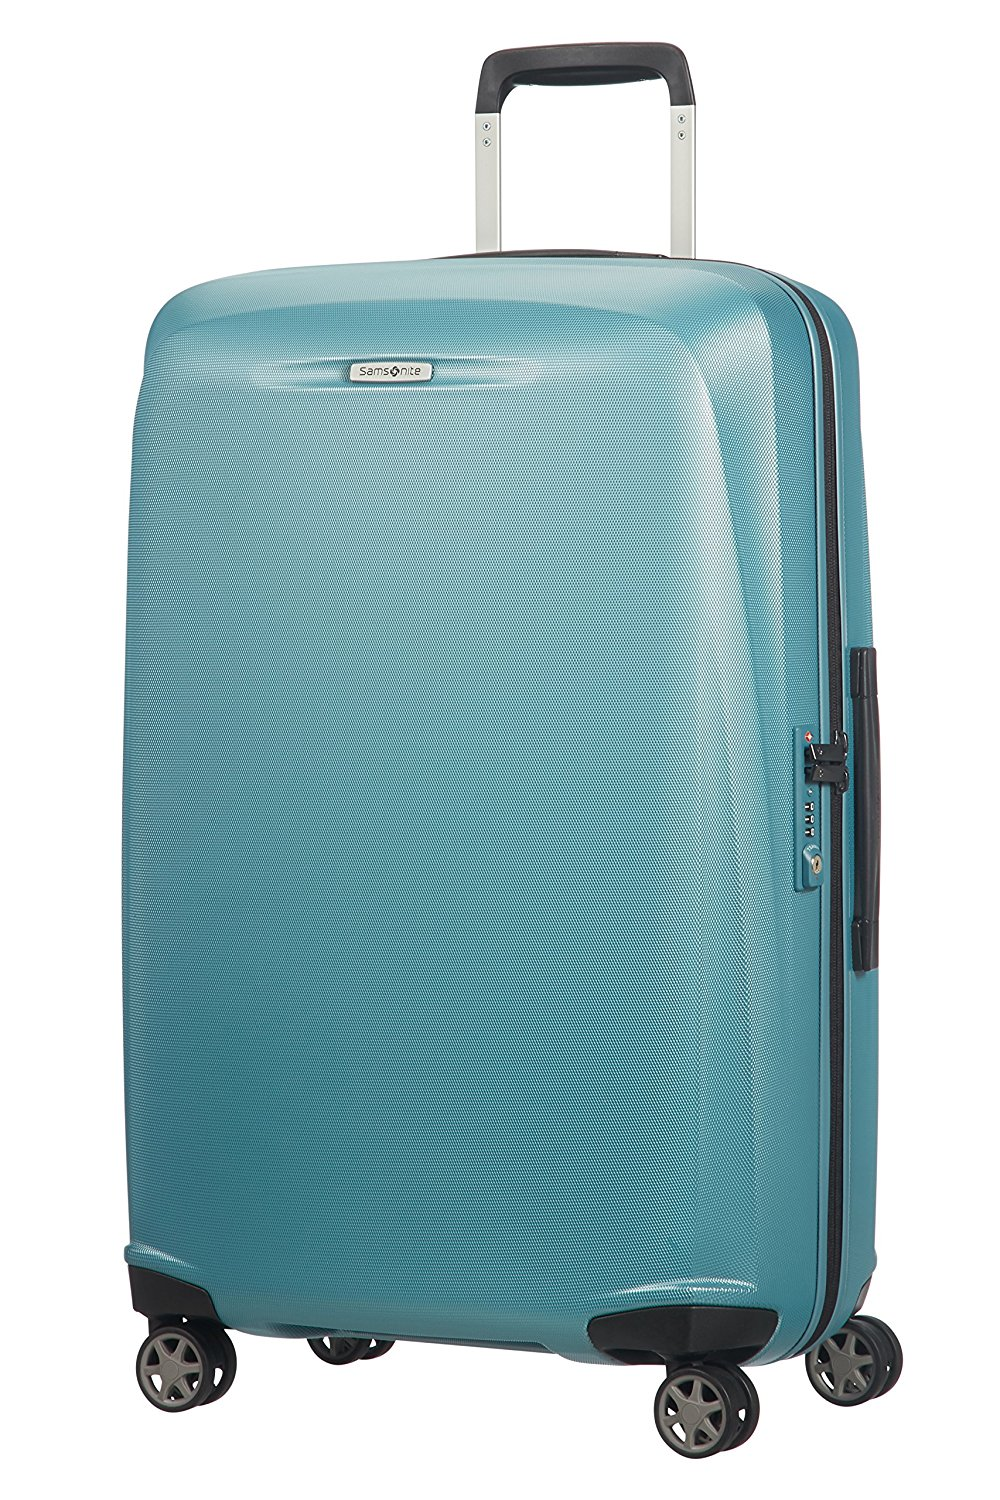 SAMSONITE Starfire Spinner 69/25 Koffer, 69 cm, 67 L, Ice Blue